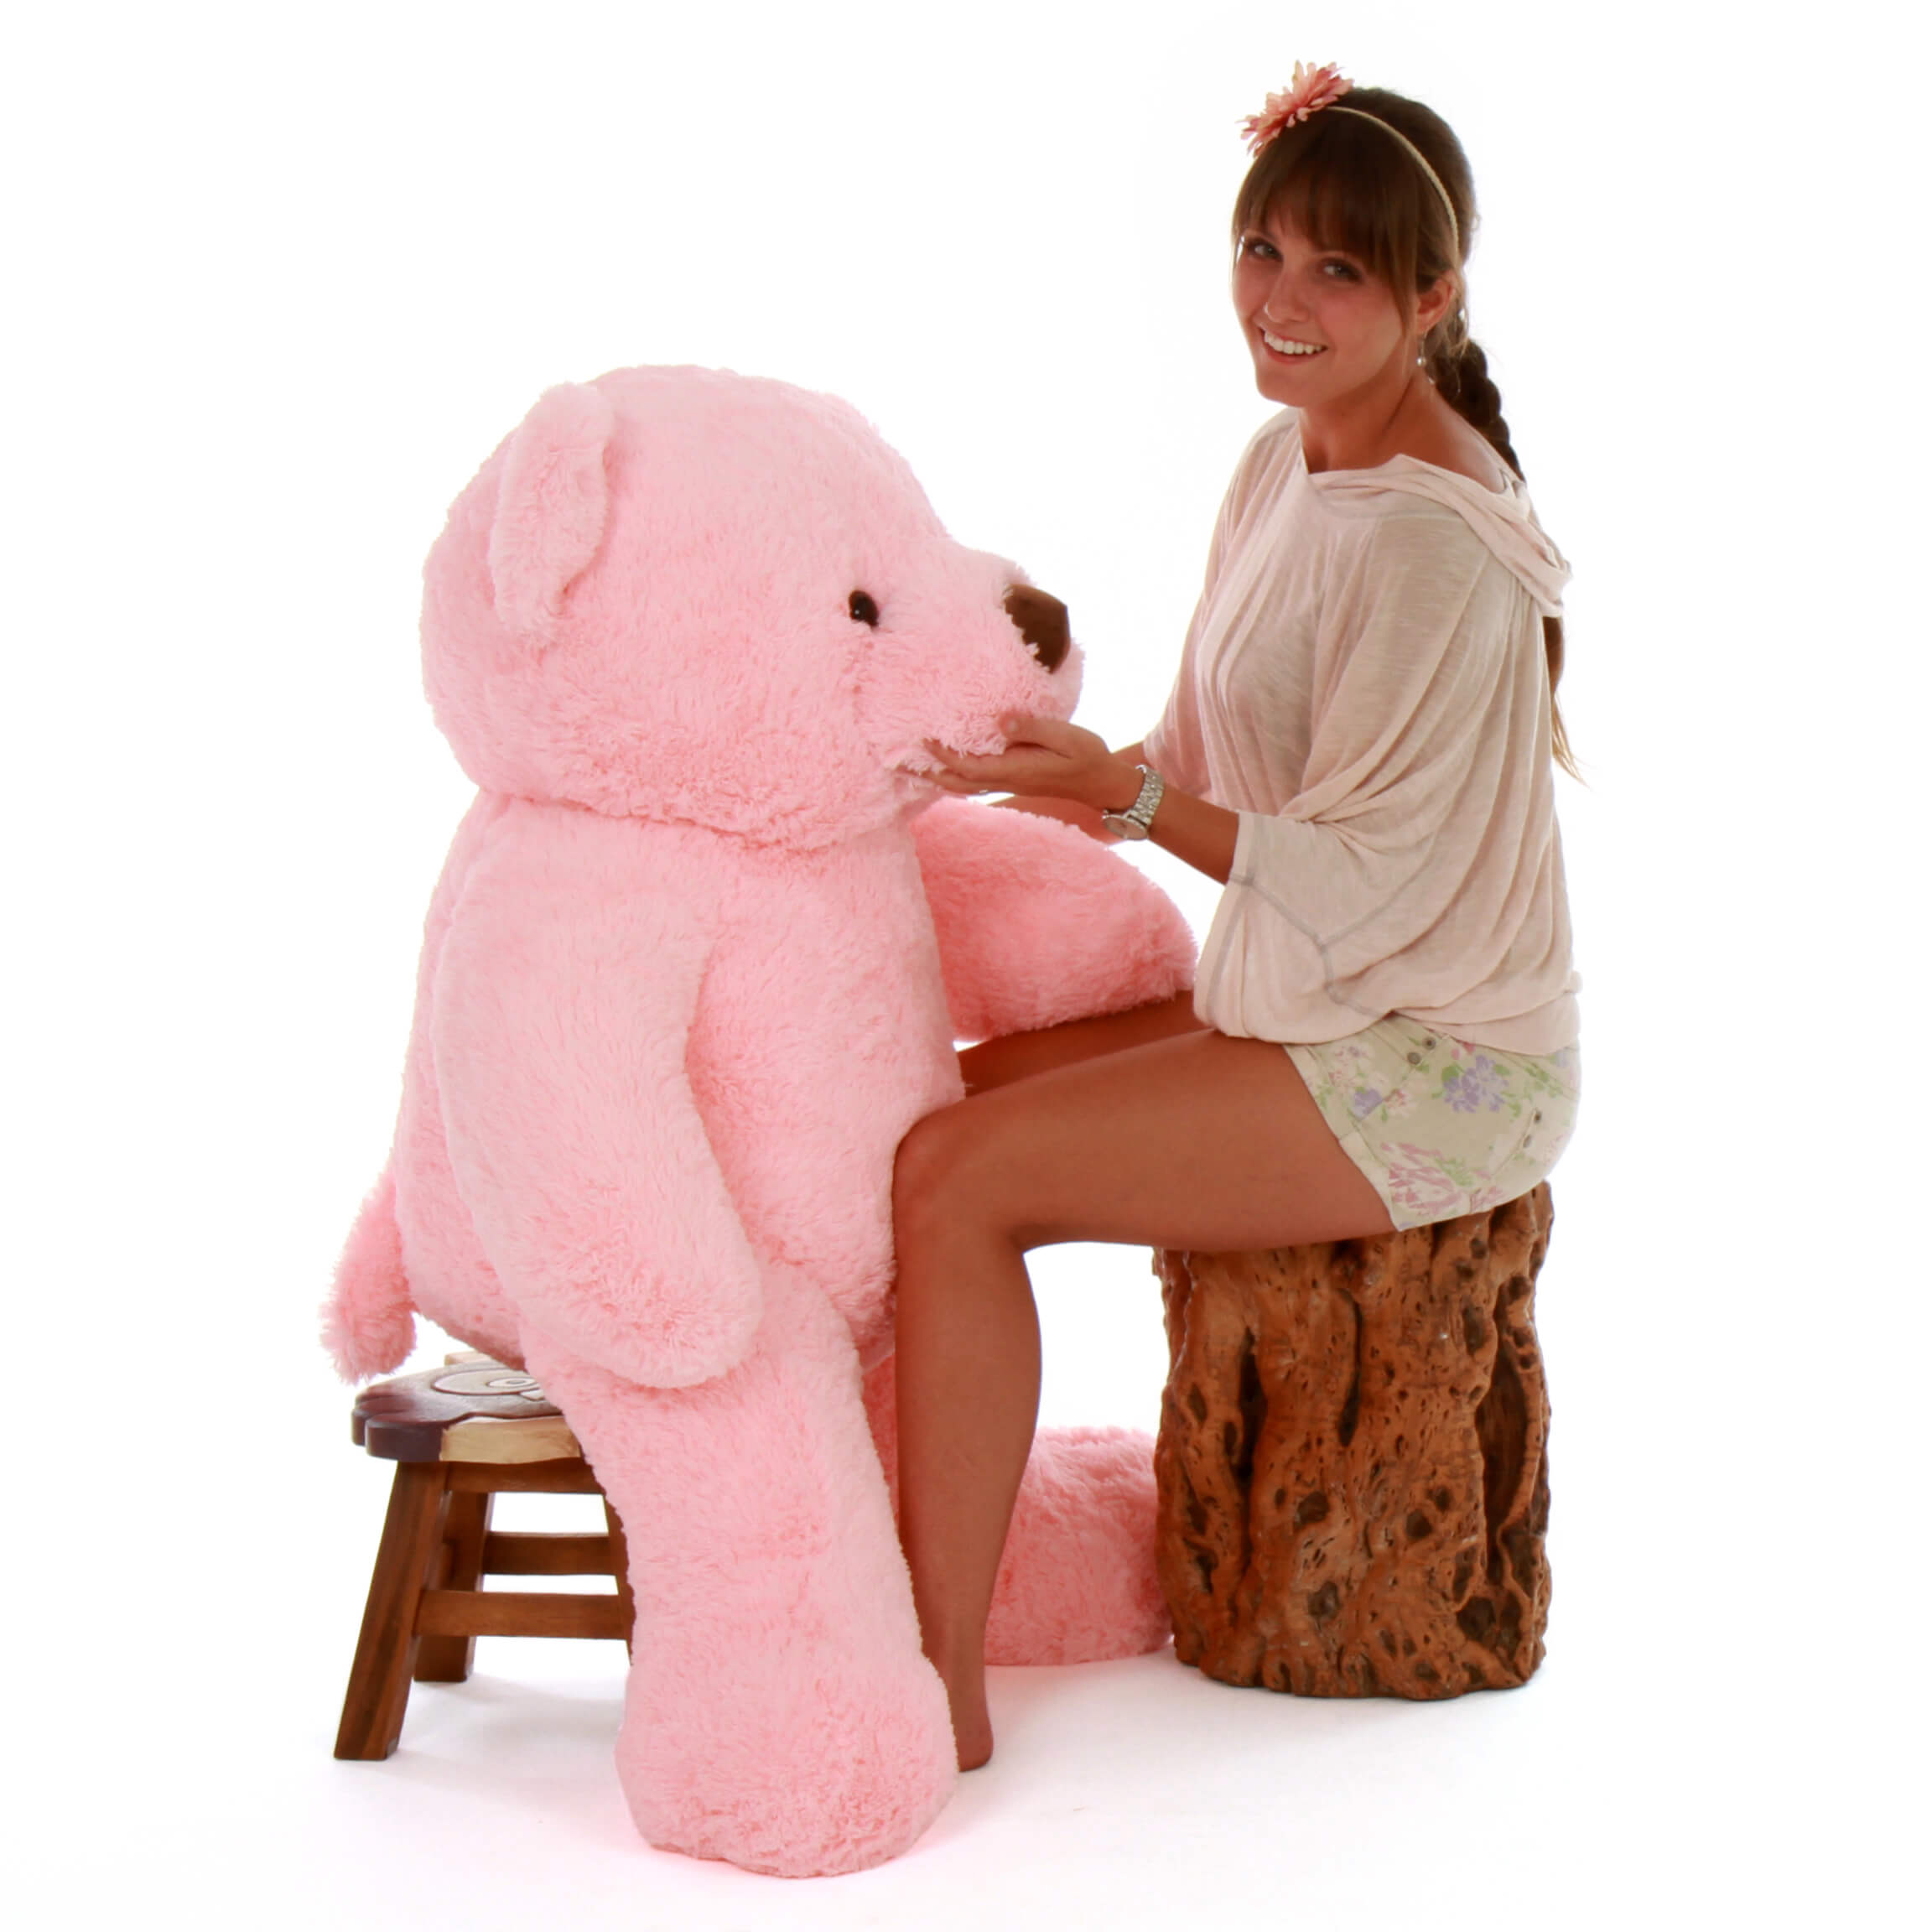 perfect-plush-toy-gigi-chubs-big-pink-teddy-bear-48in-1.jpg